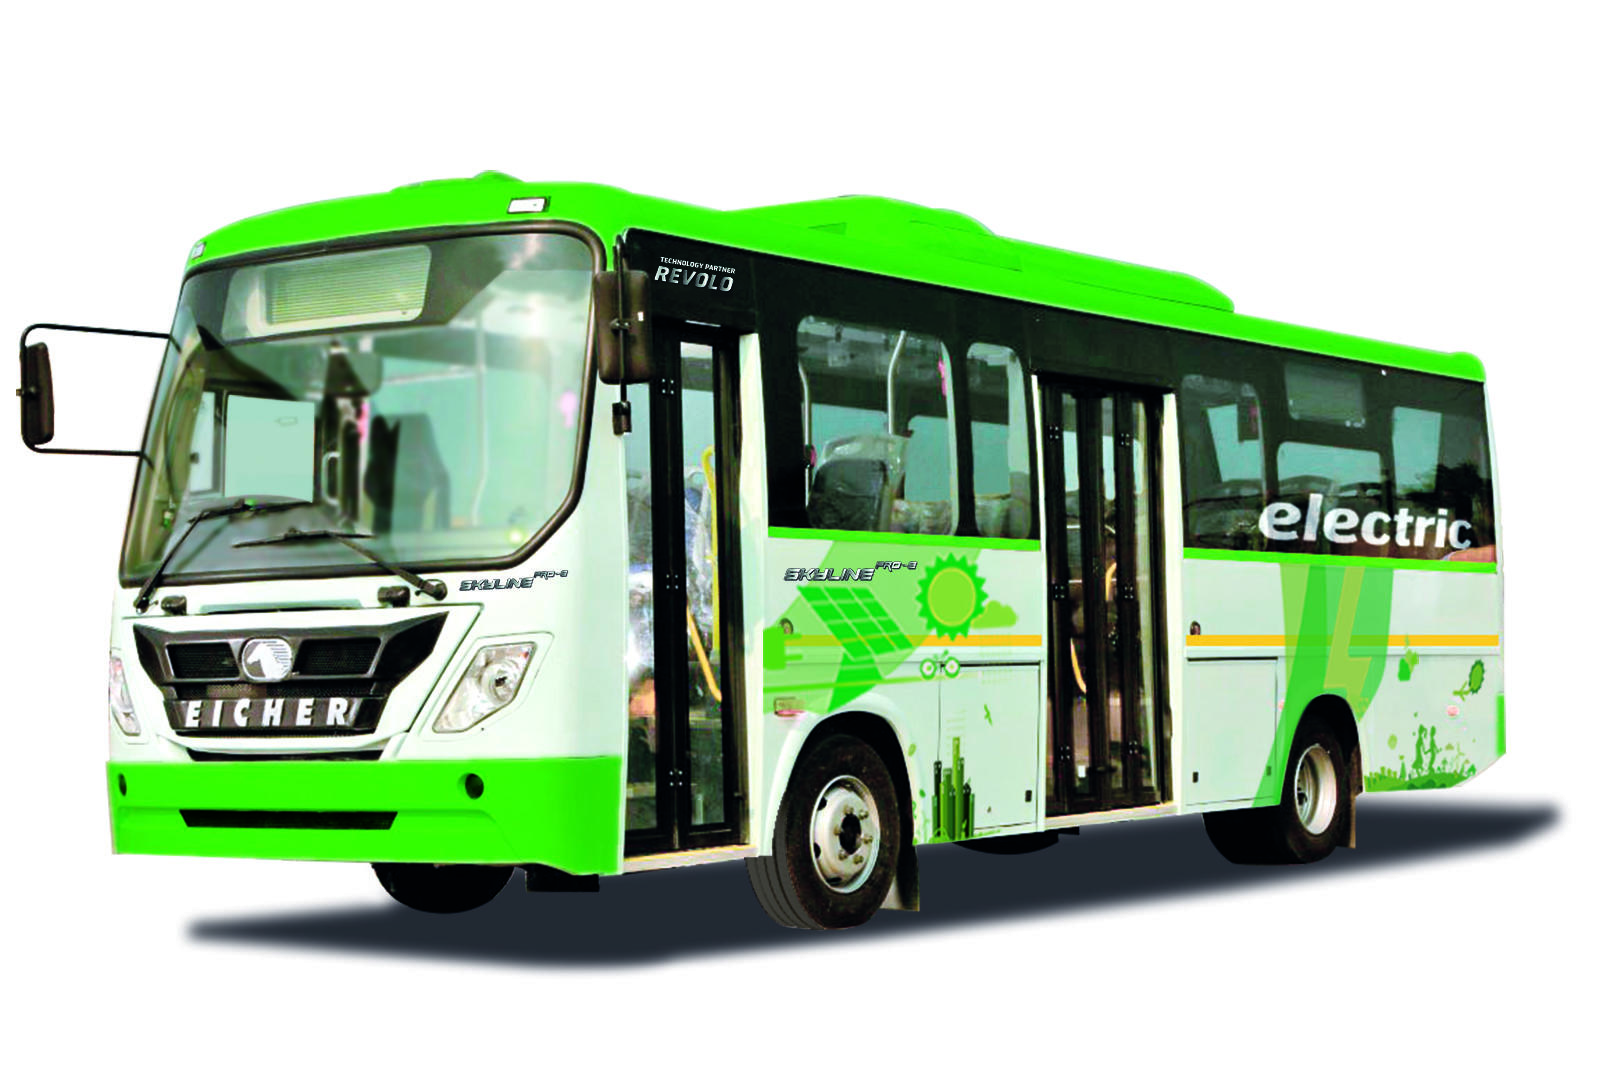 Eicher Trucks & Buses: Eicher Trucks & Buses introduces electric